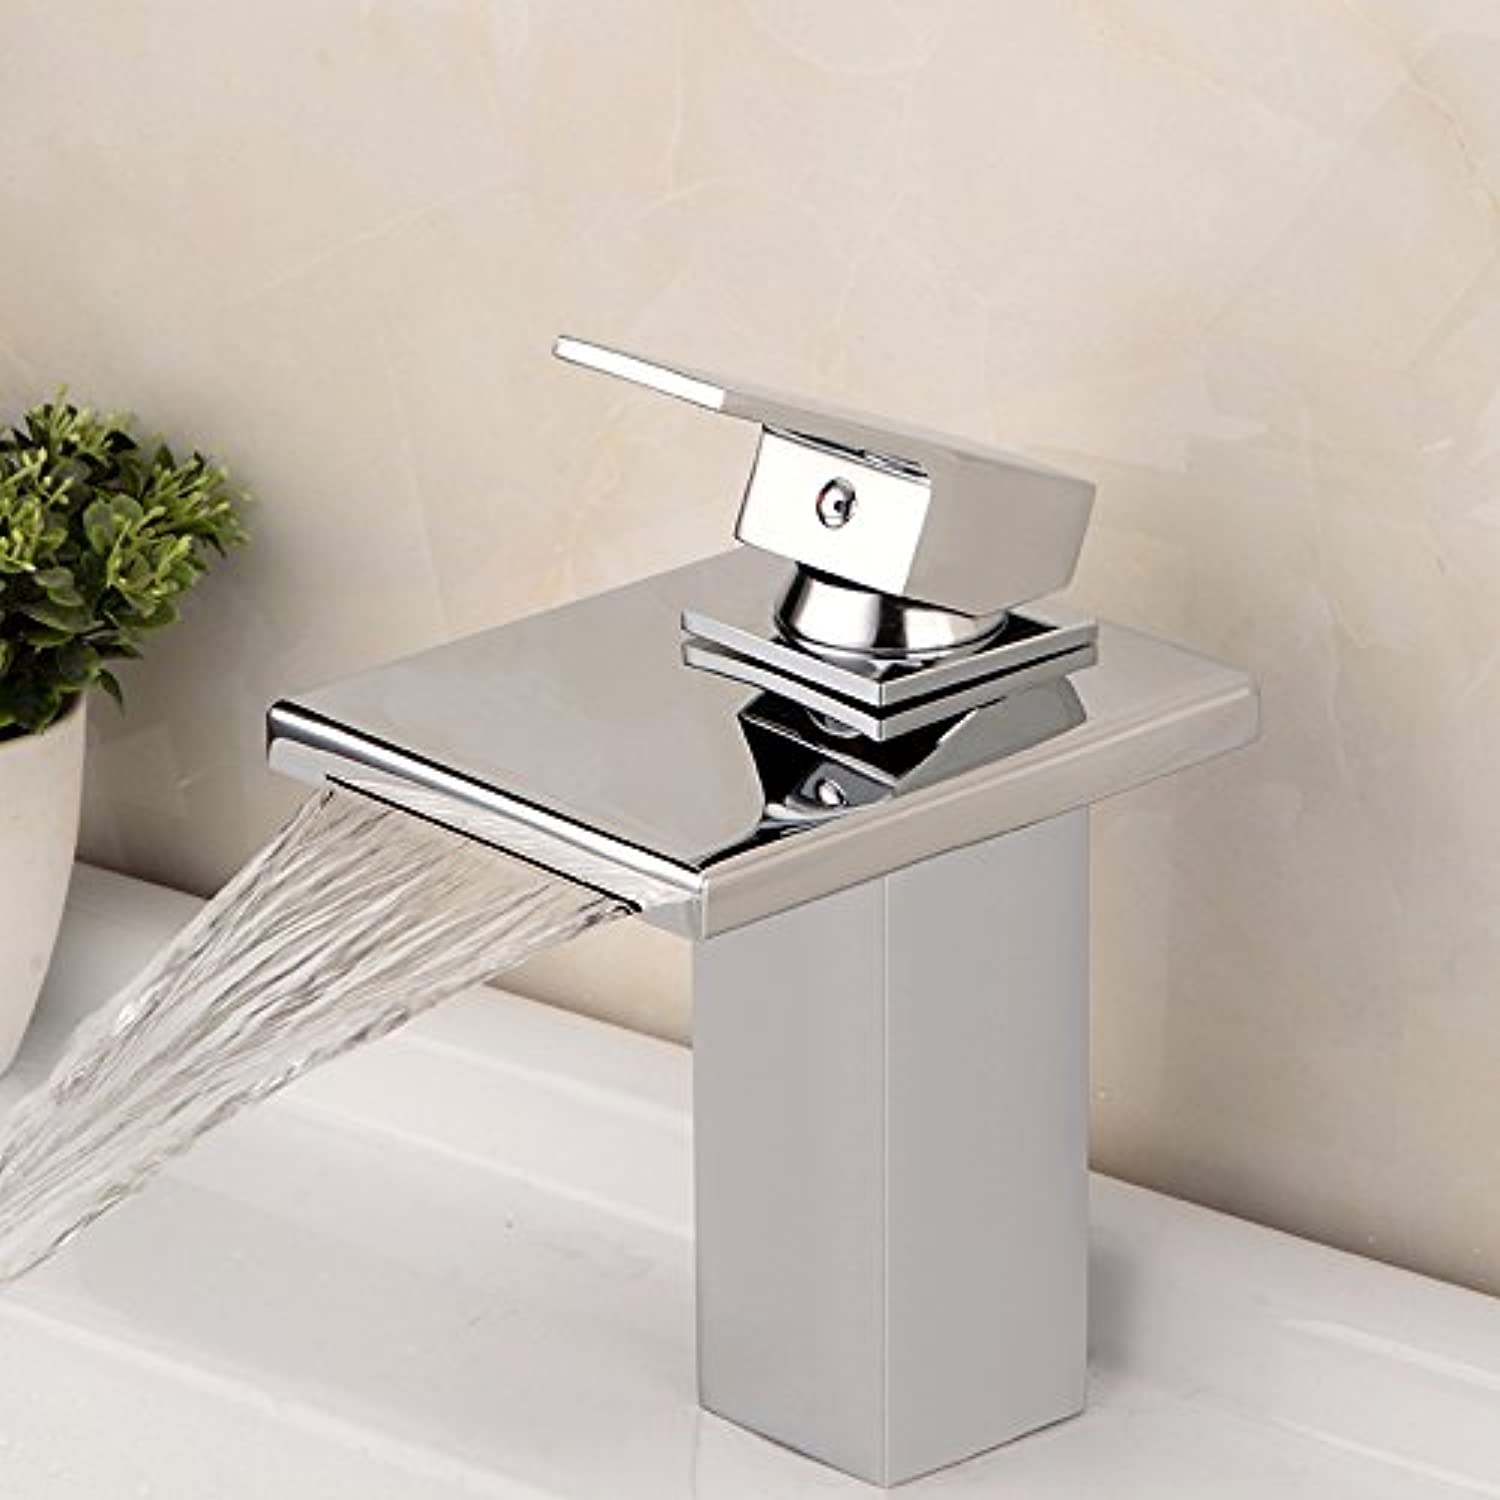 Mangeoo Waterfall, copper, hot and cold bathroom, bathroom, faucet